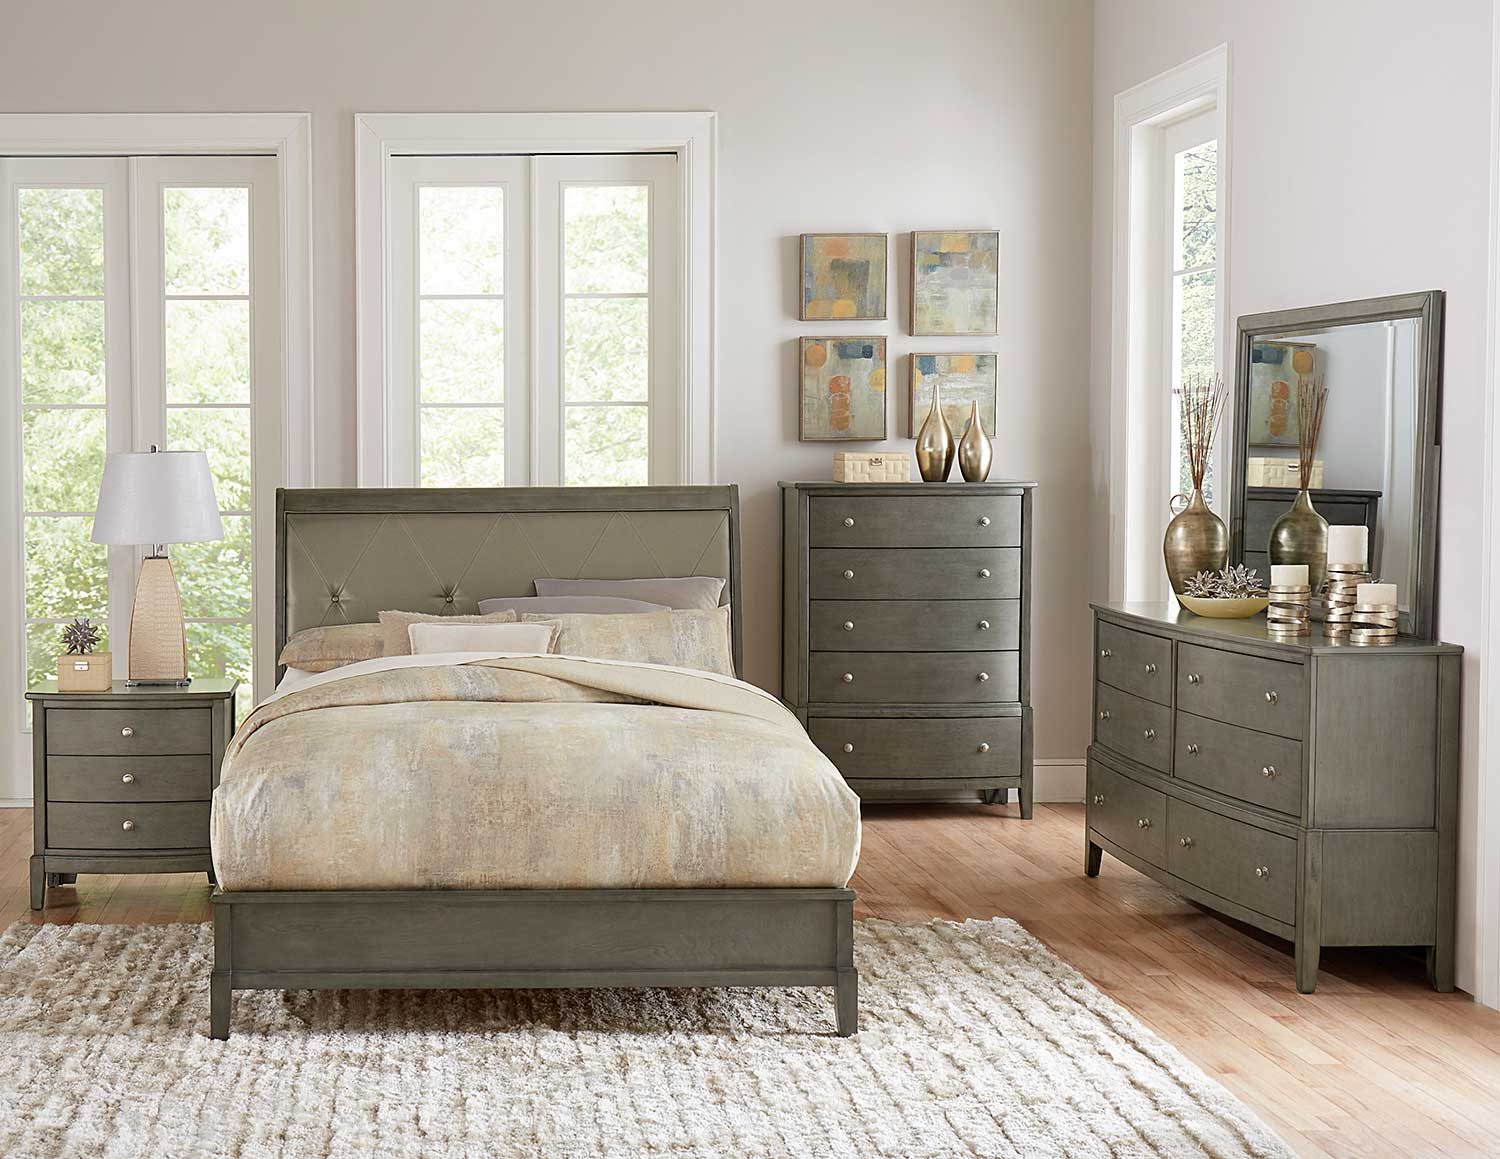 Homelegance Cotterill Bedroom Set - Gray Finish over Birch Veneer